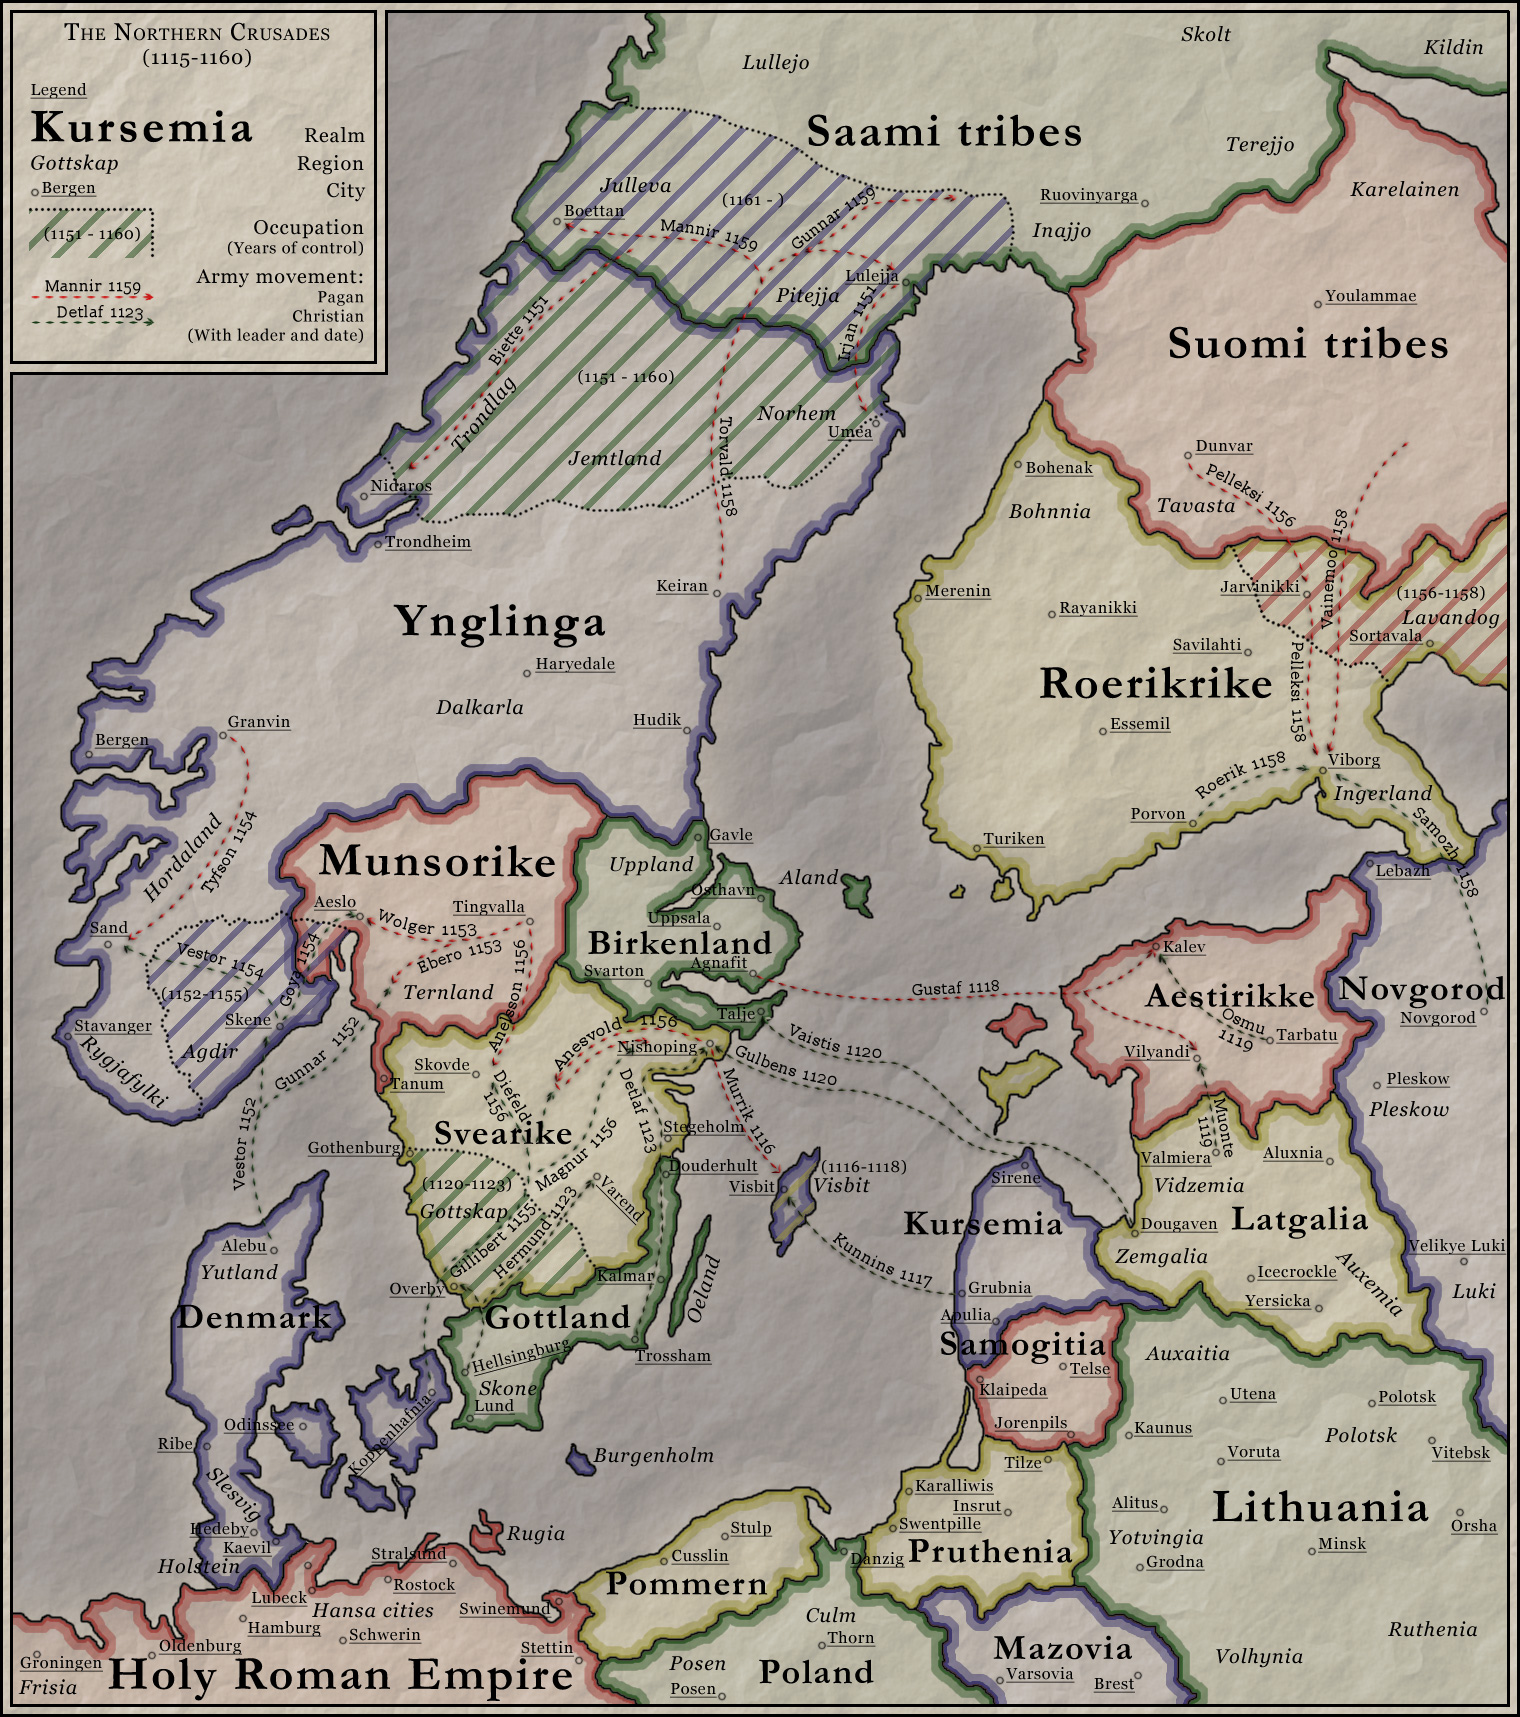 a comparison of the northern crusades with the eastern crusades Go to this site providing information about the facts, history of the effects of the crusades  and extended the market for eastern wares in europe.